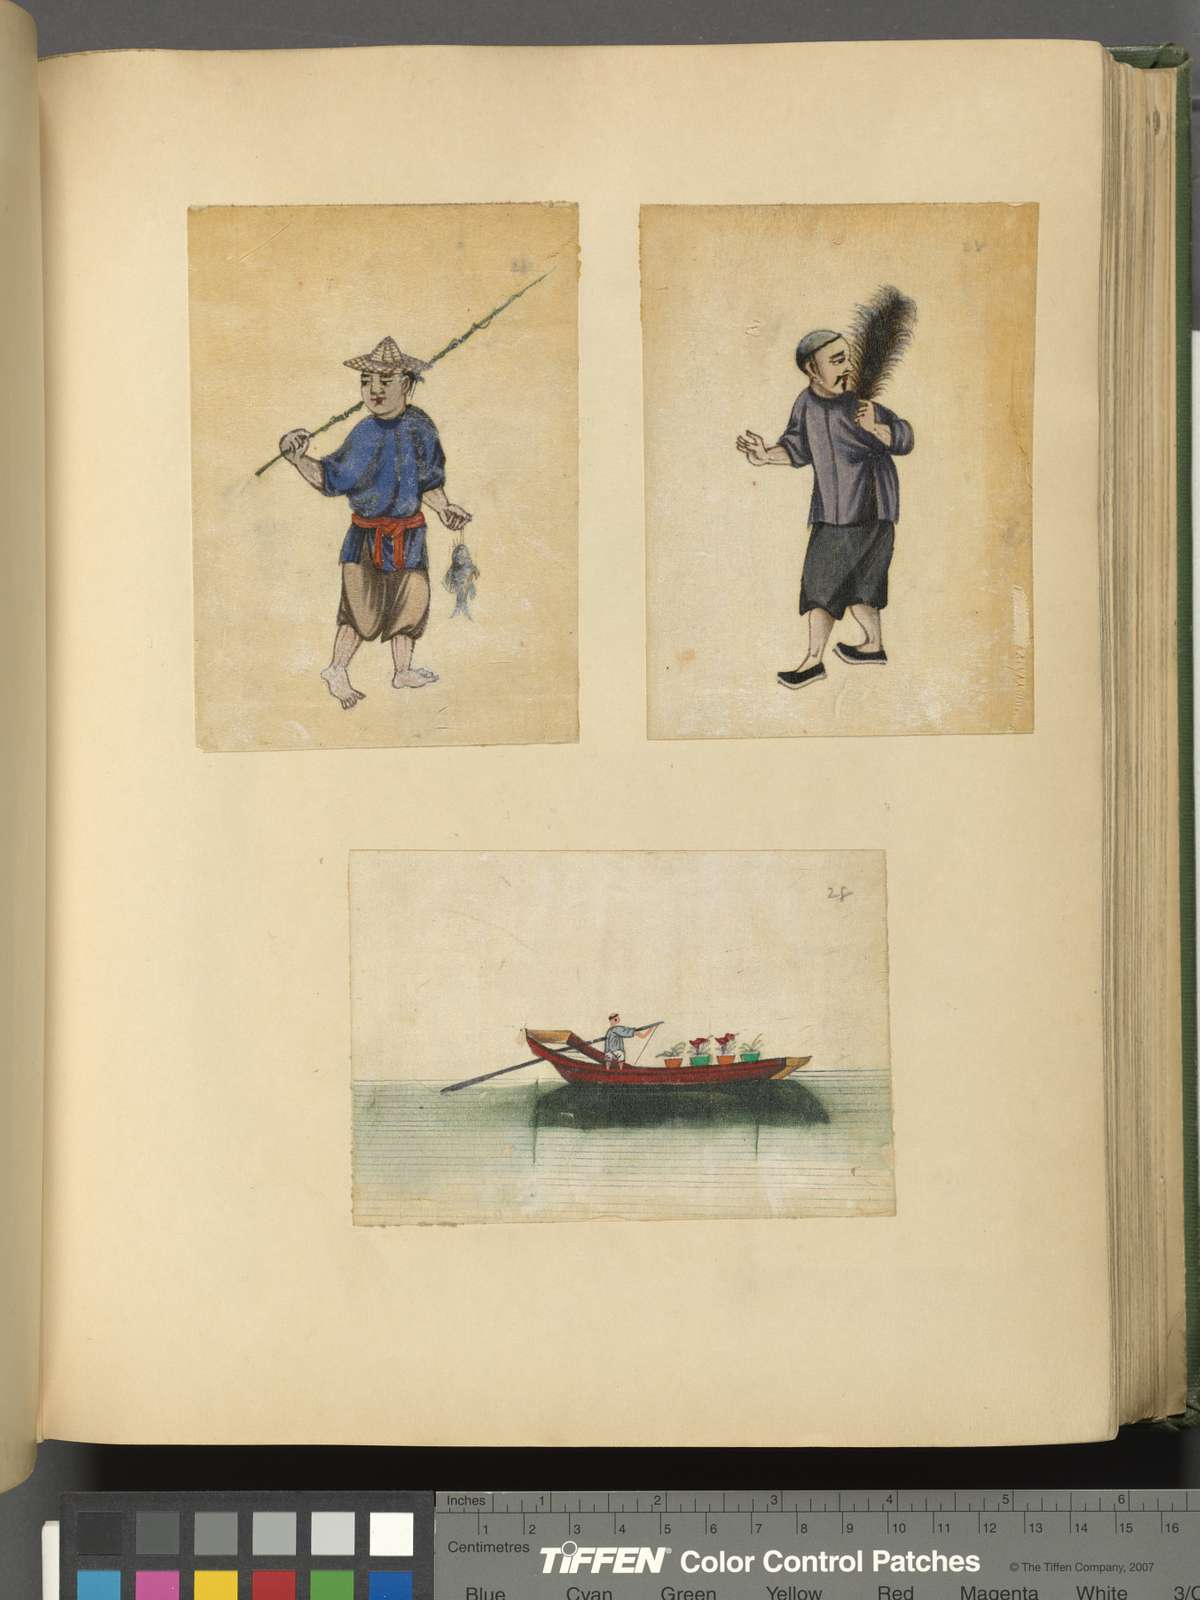 One drawing of a fisherman, one drawing of a man carrying a feather, one drawing of a barge.